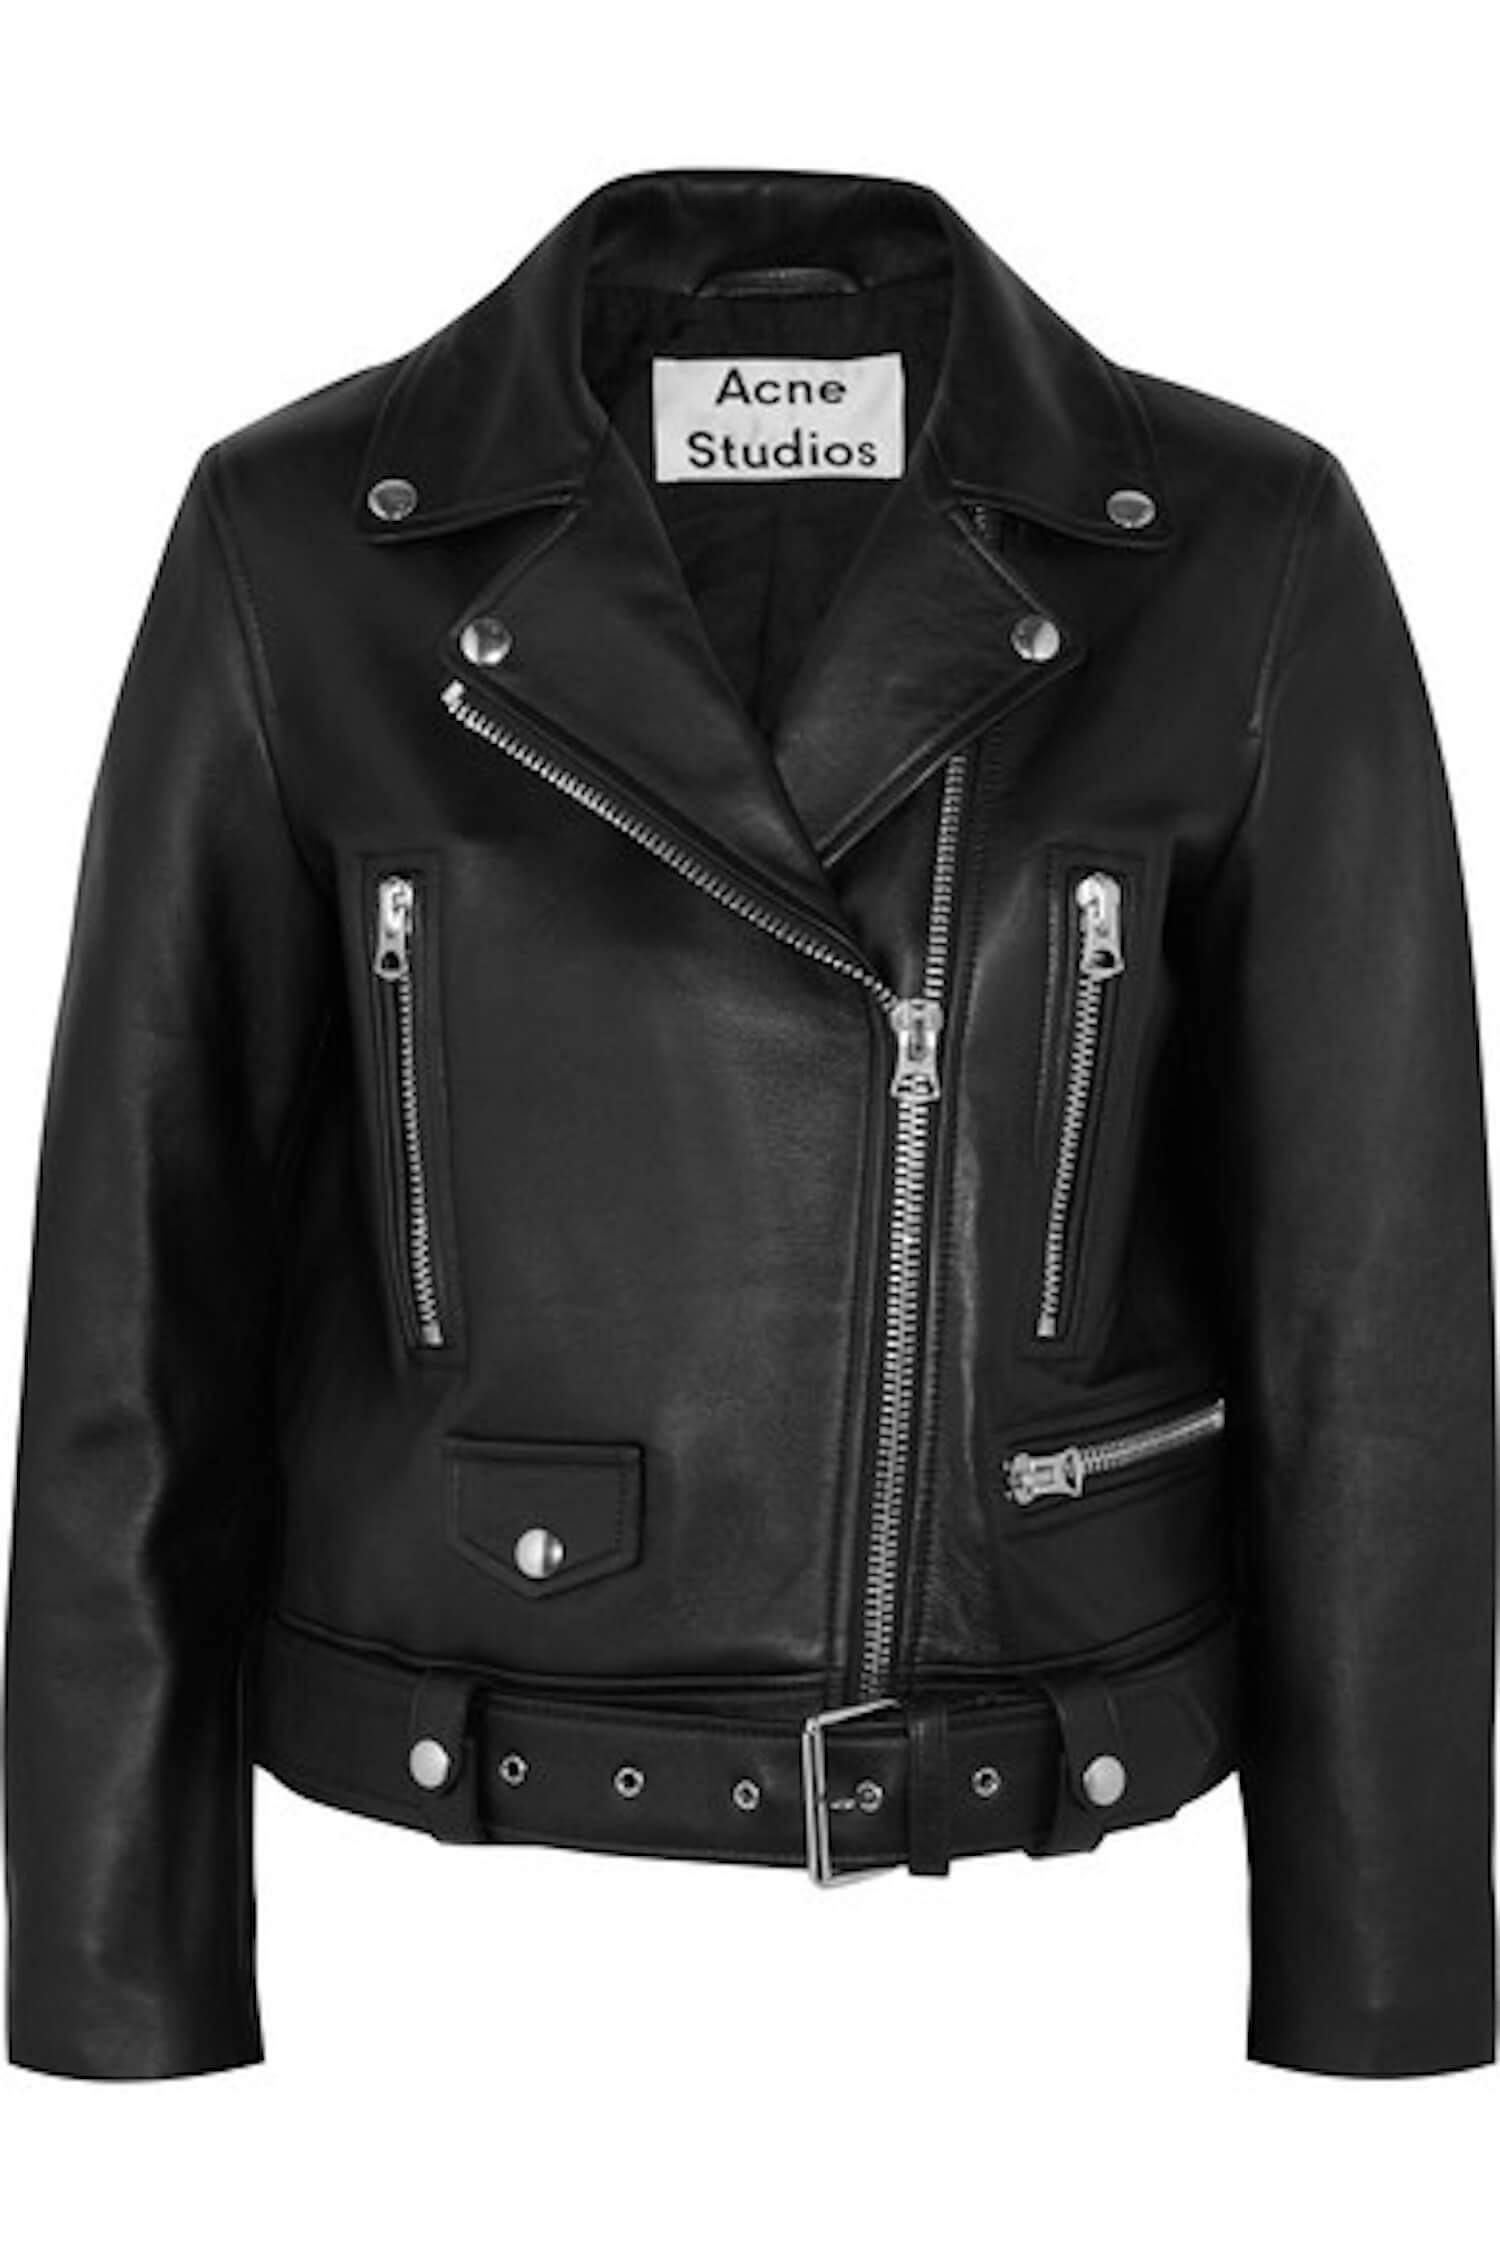 ACNE Leather Jacket